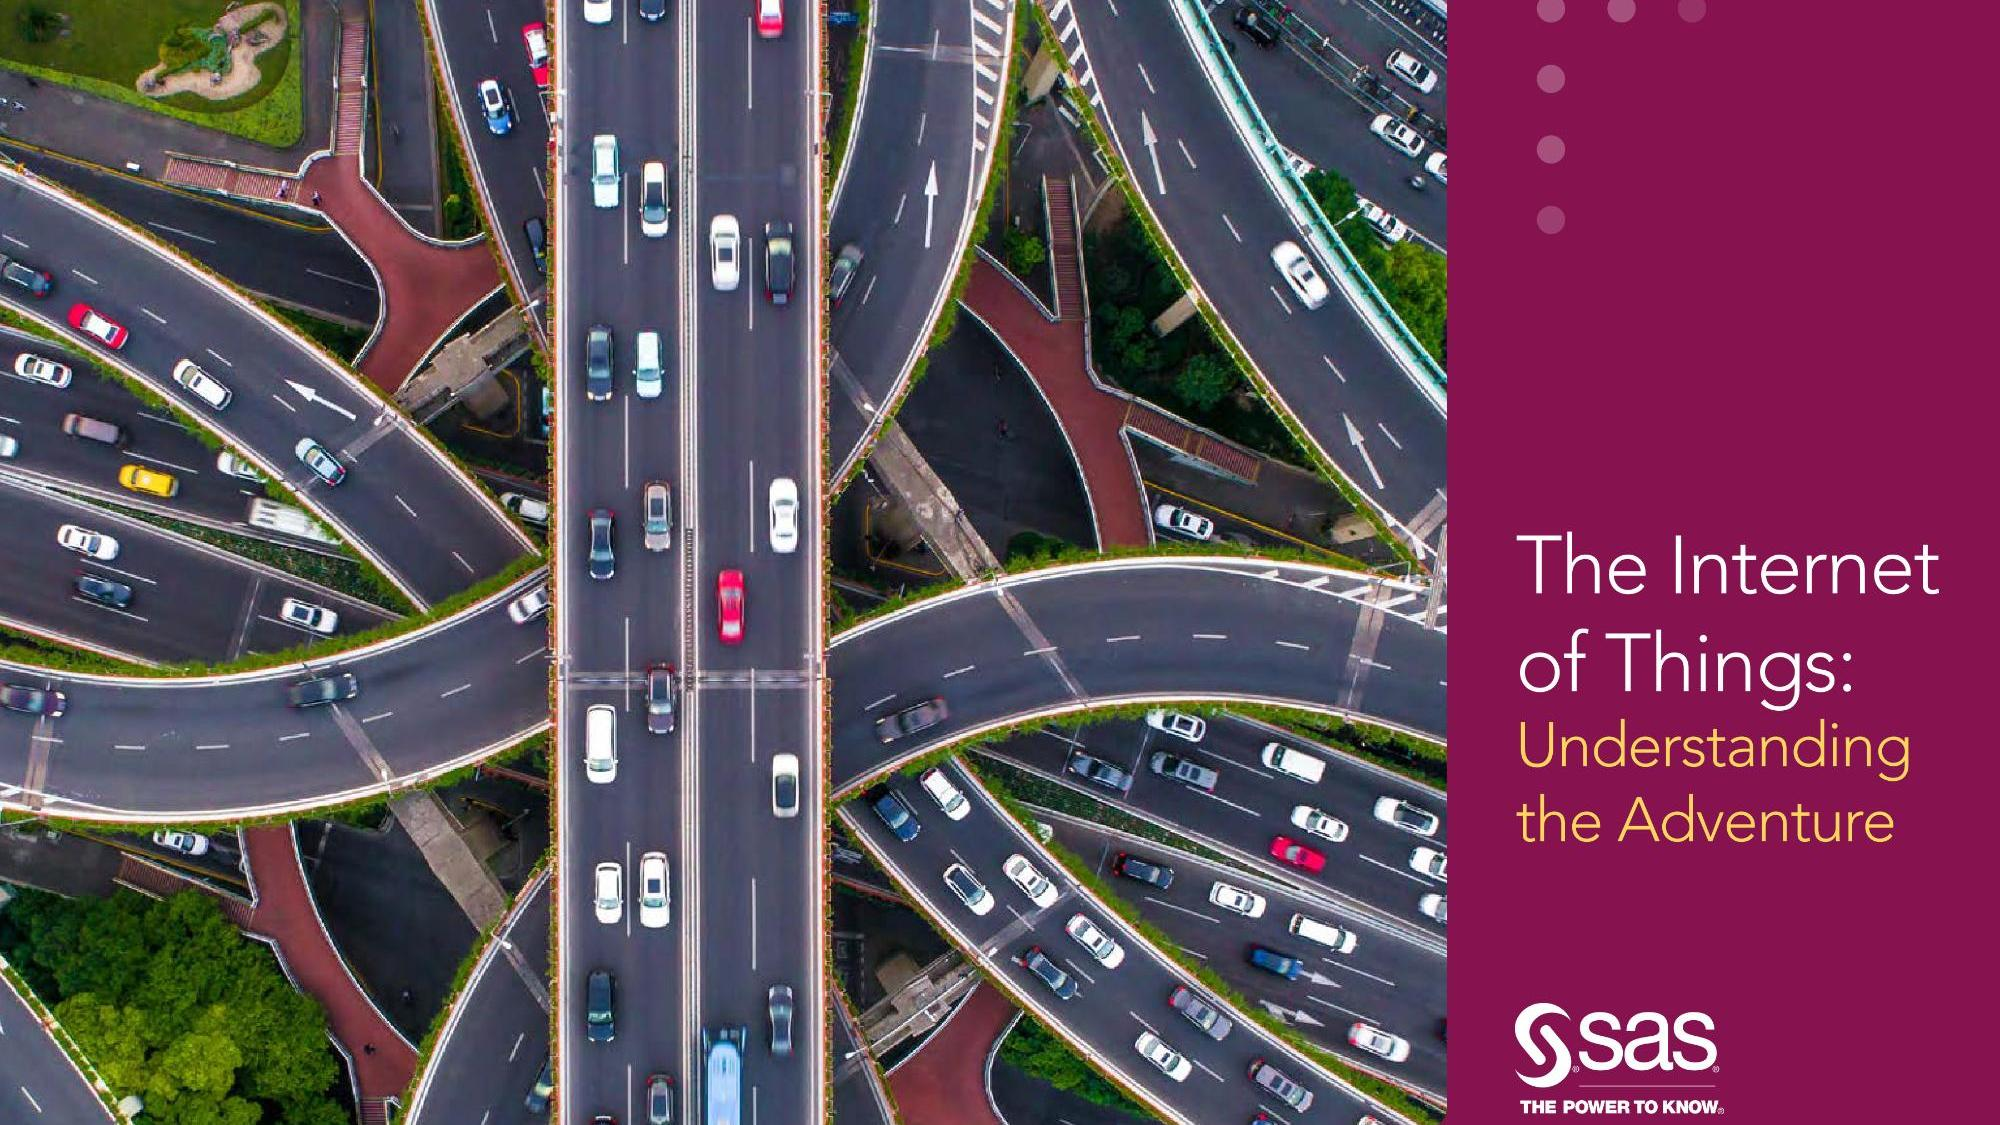 Internet of Things: Understanding the Journey